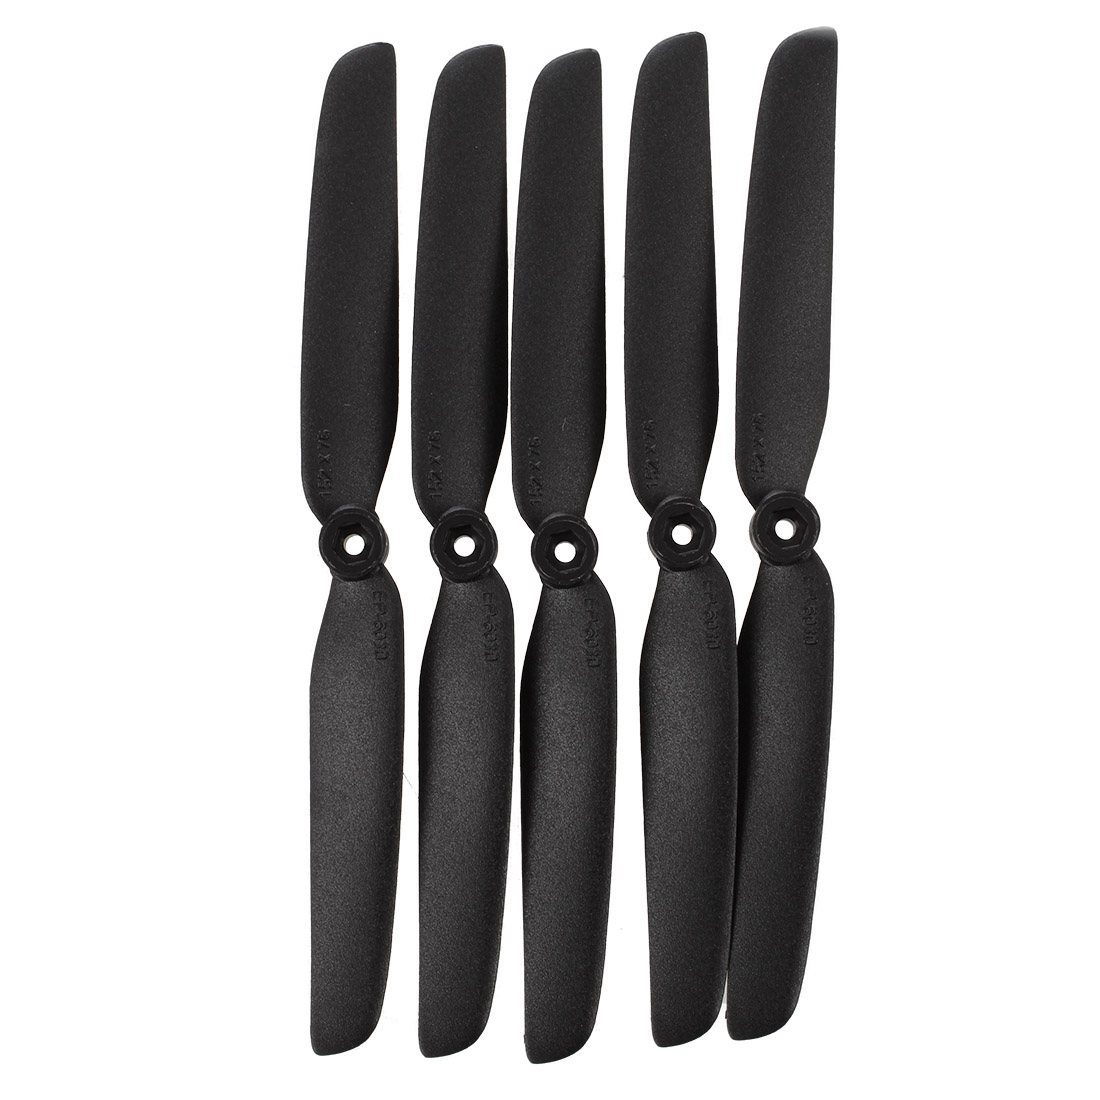 5 x Electric RC Plane Gray Propellers Props 2 Blade 152x76mm 6x3 60305 x Electric RC Plane Gray Propellers Props 2 Blade 152x76mm 6x3 6030